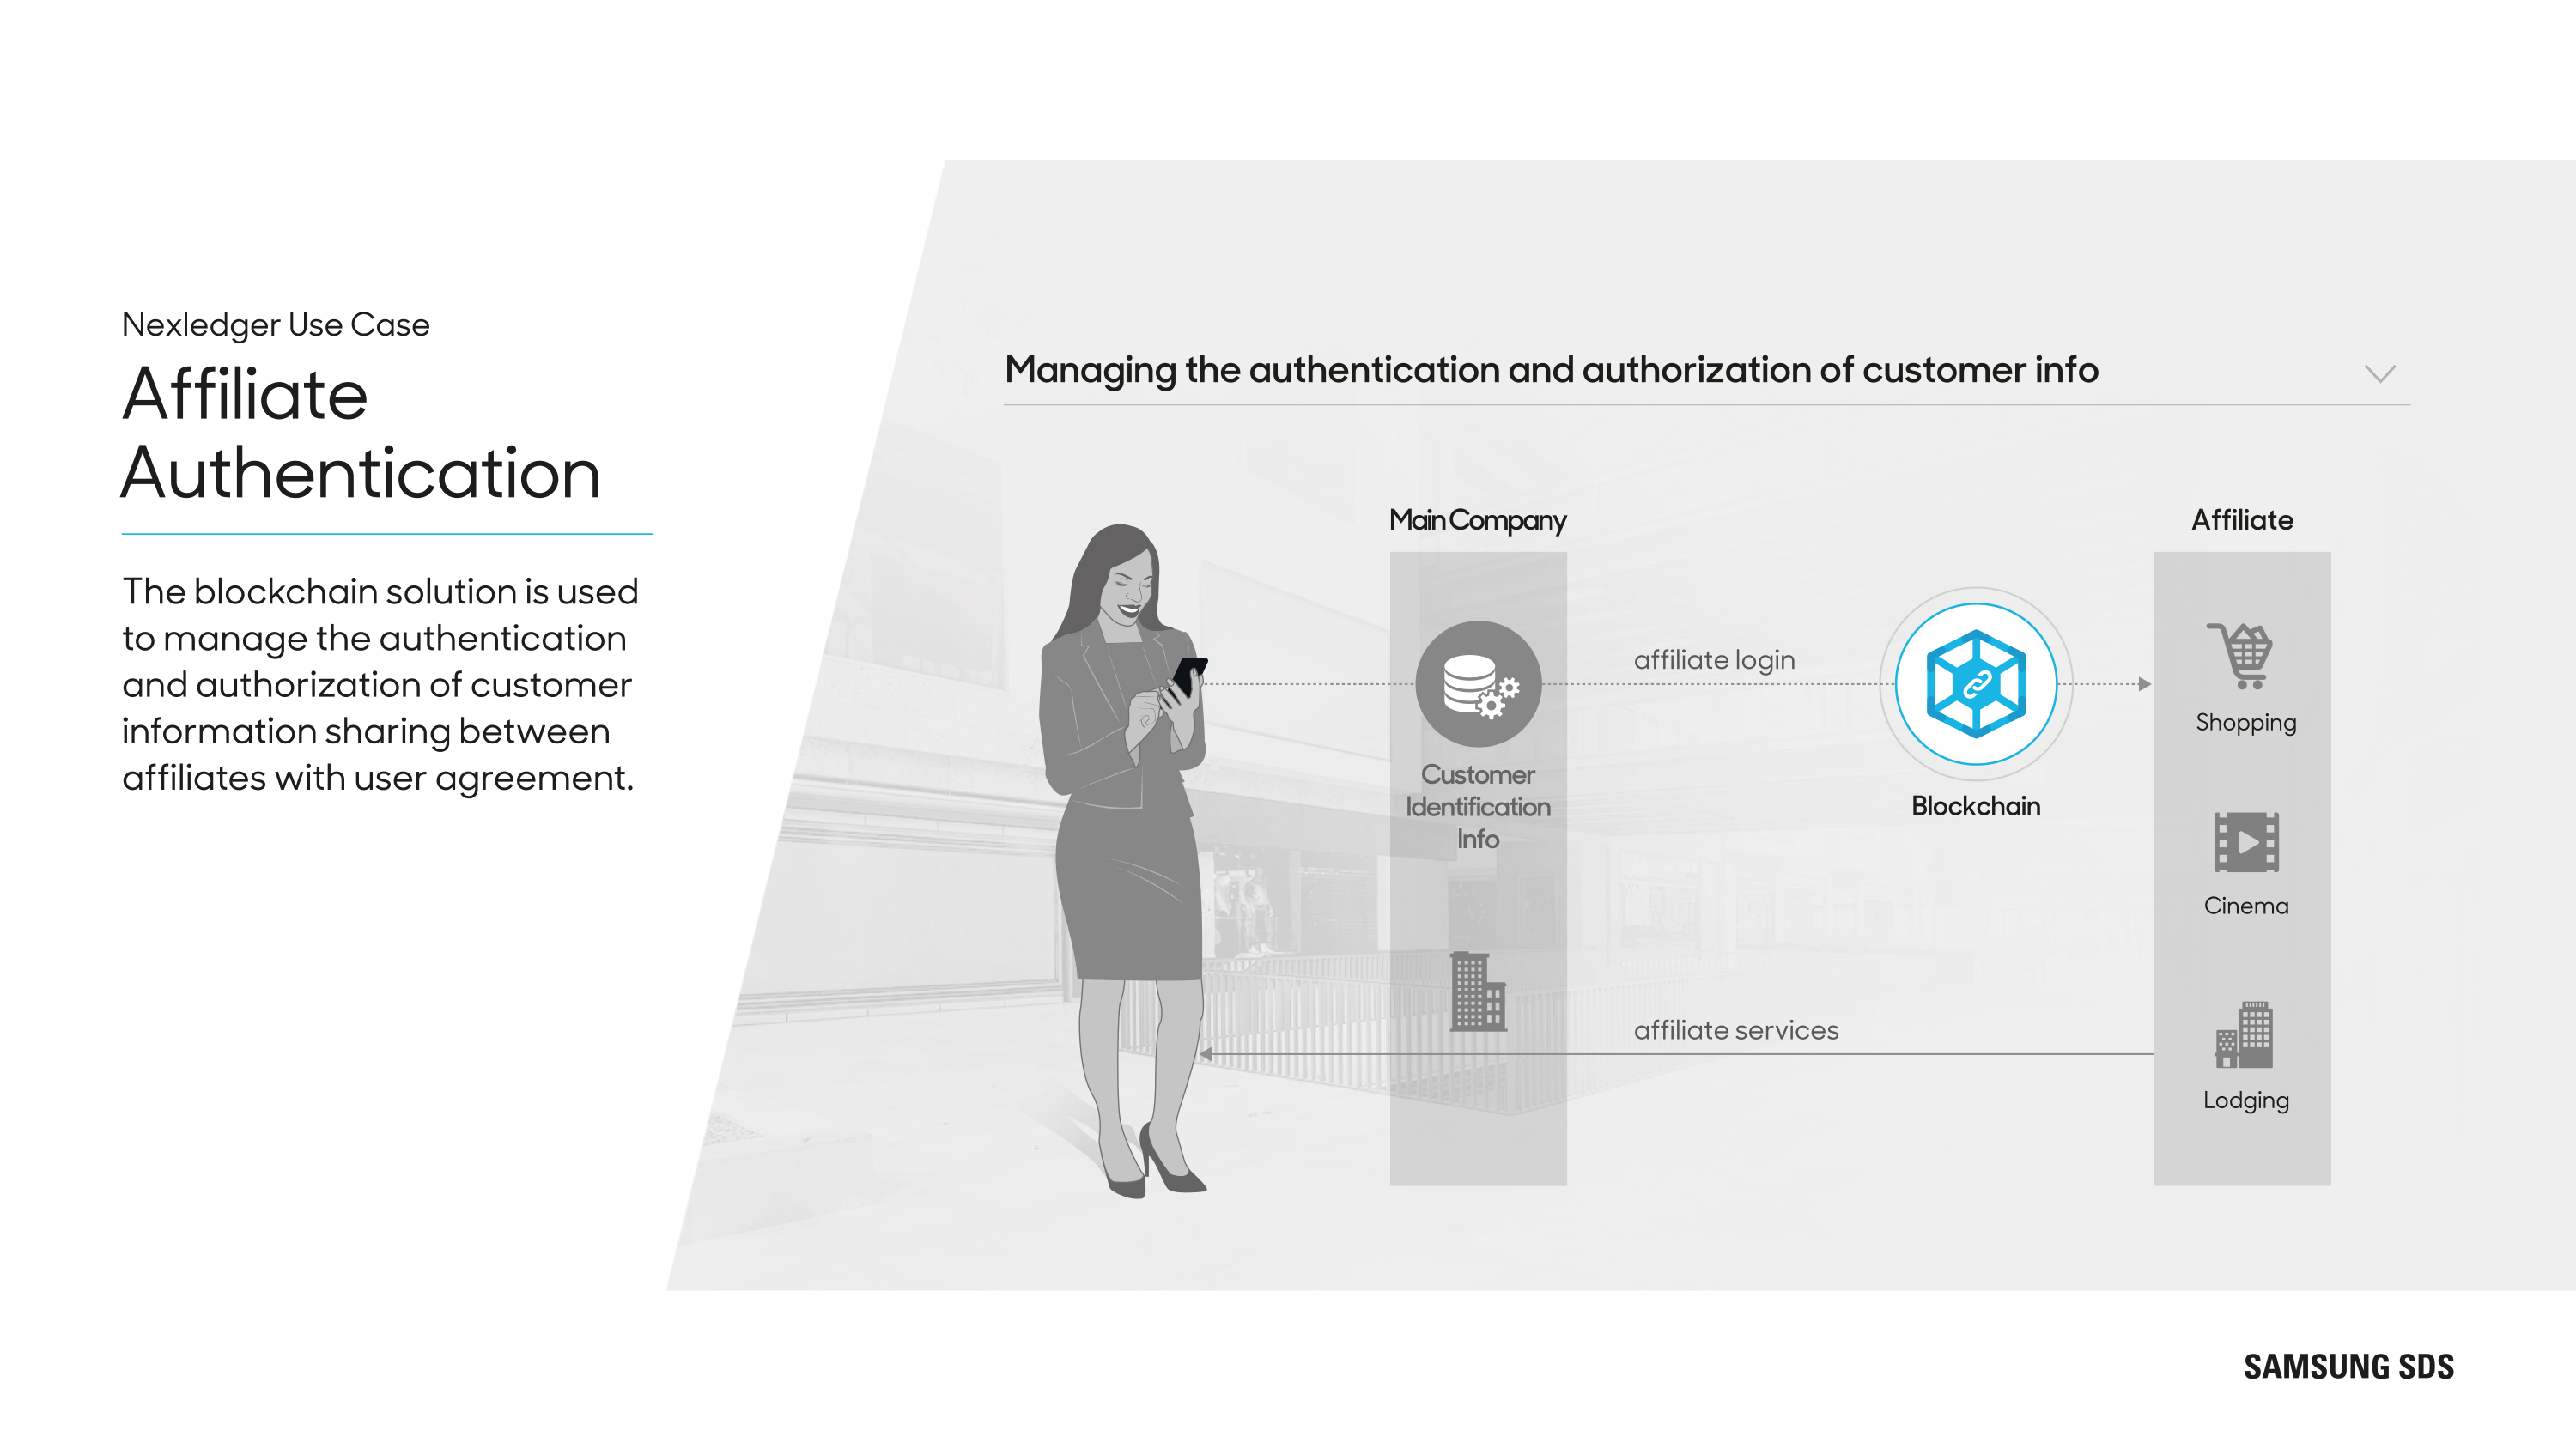 Affiliate Authentication  The blockchain solution is used to manage the authentication and authorization of customer information sharing between affiliates with user agreement